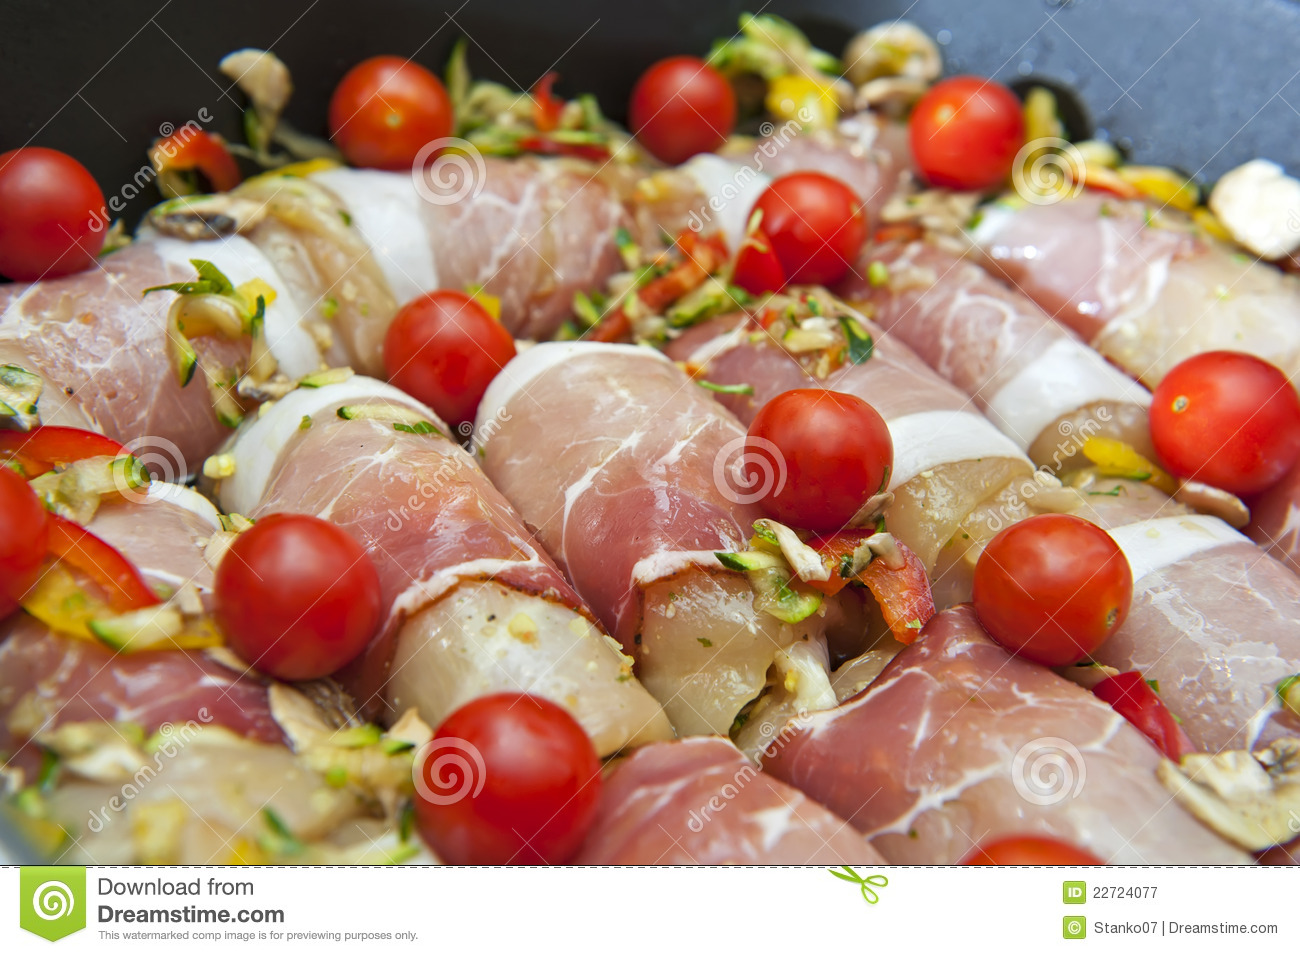 Chicken meat wrapped in bacon